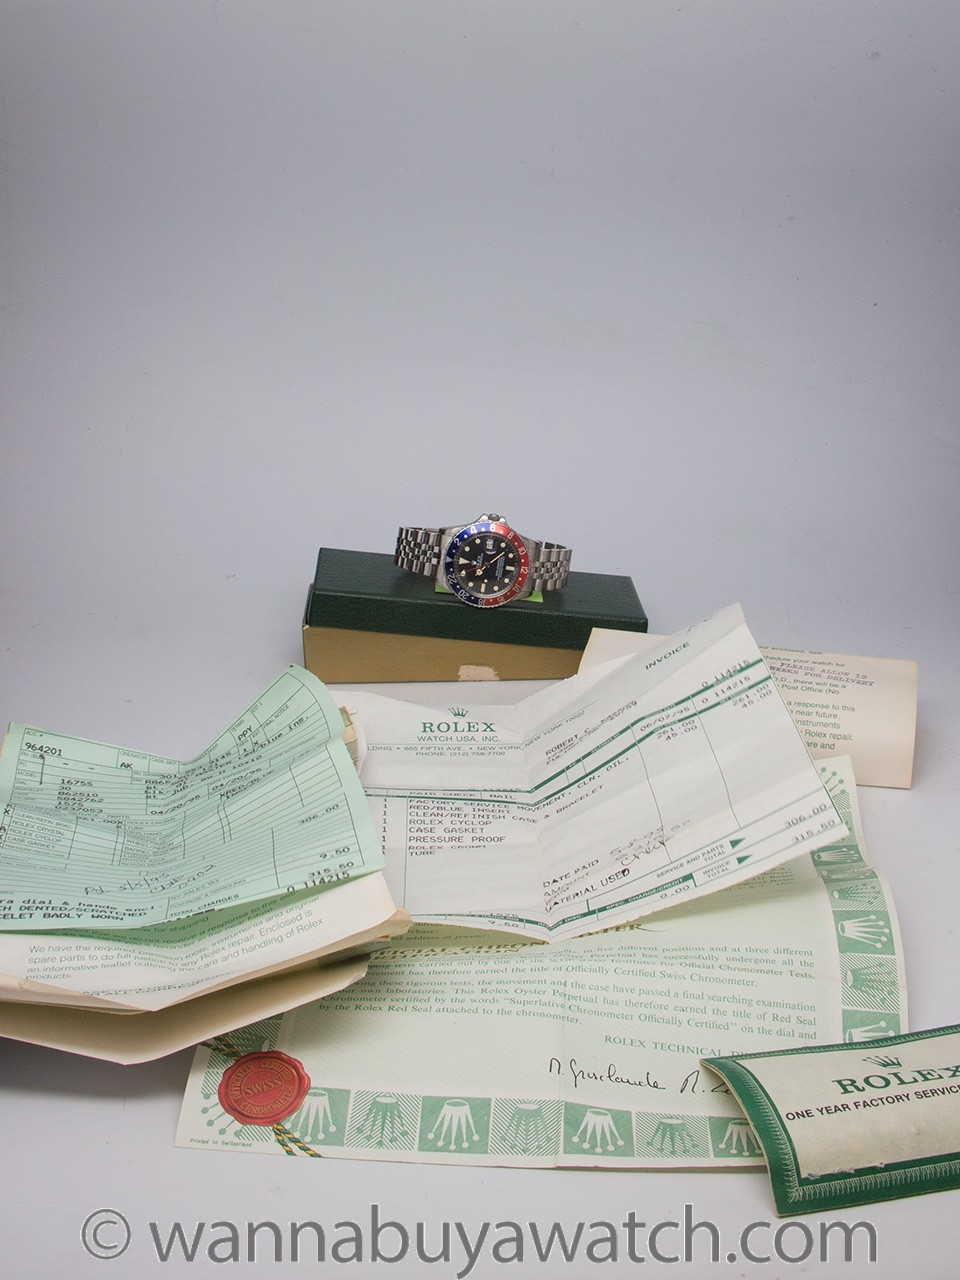 Rolex SS GMT ref 1675 circa 1978 with papers